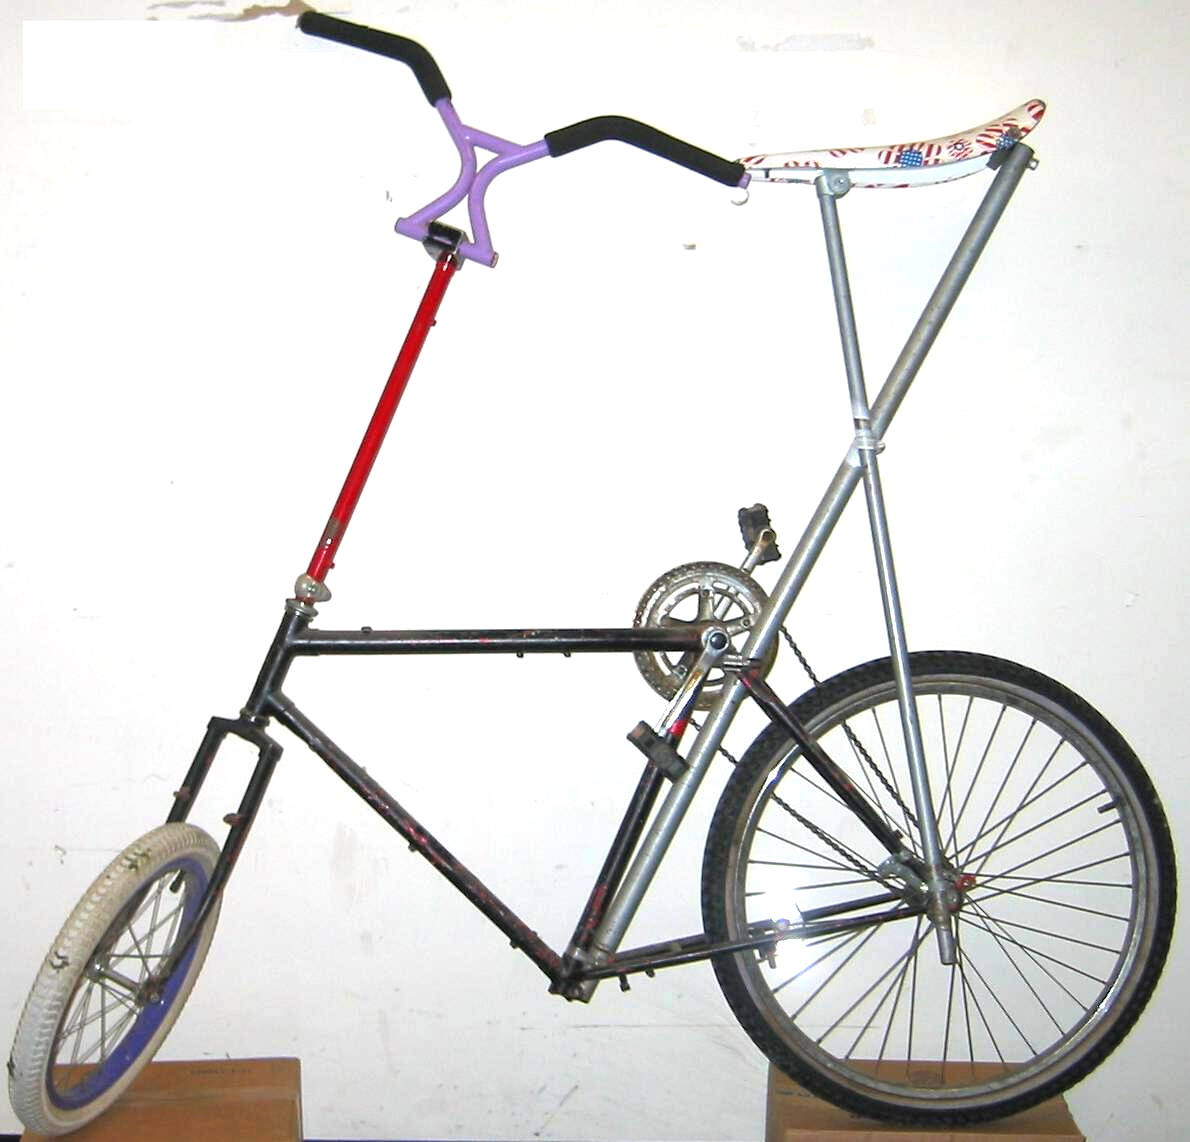 Build Your Own Tall Bike Without Welding